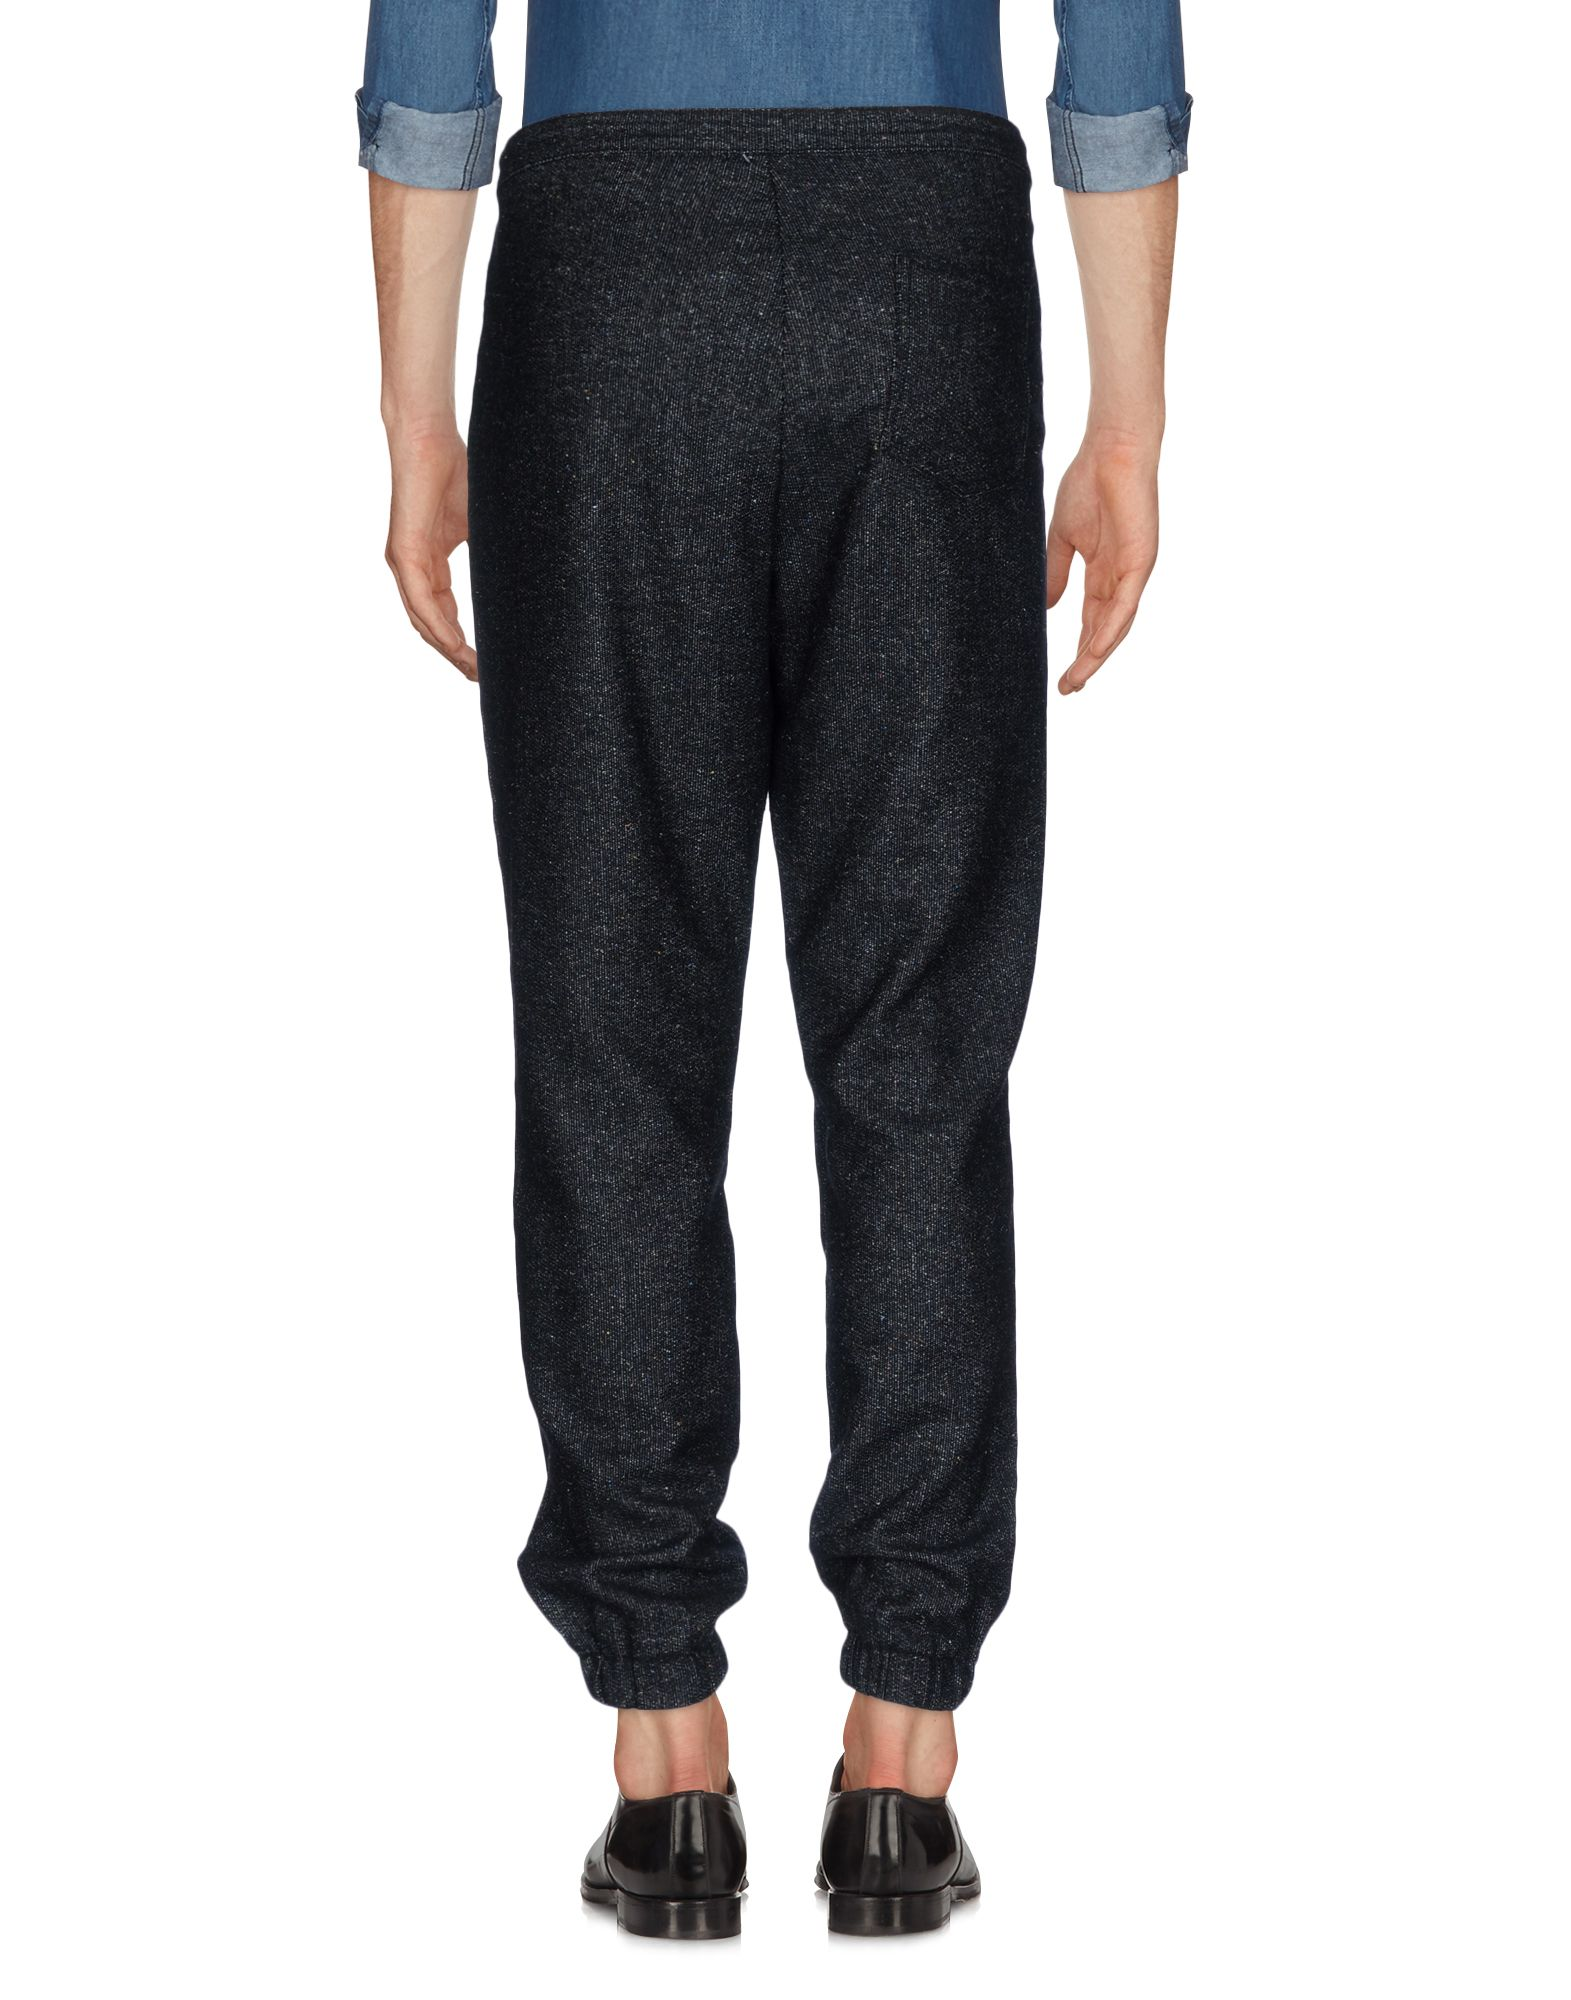 Pantalone Look After You Uomo Uomo You - 13088195RN f6b9a3